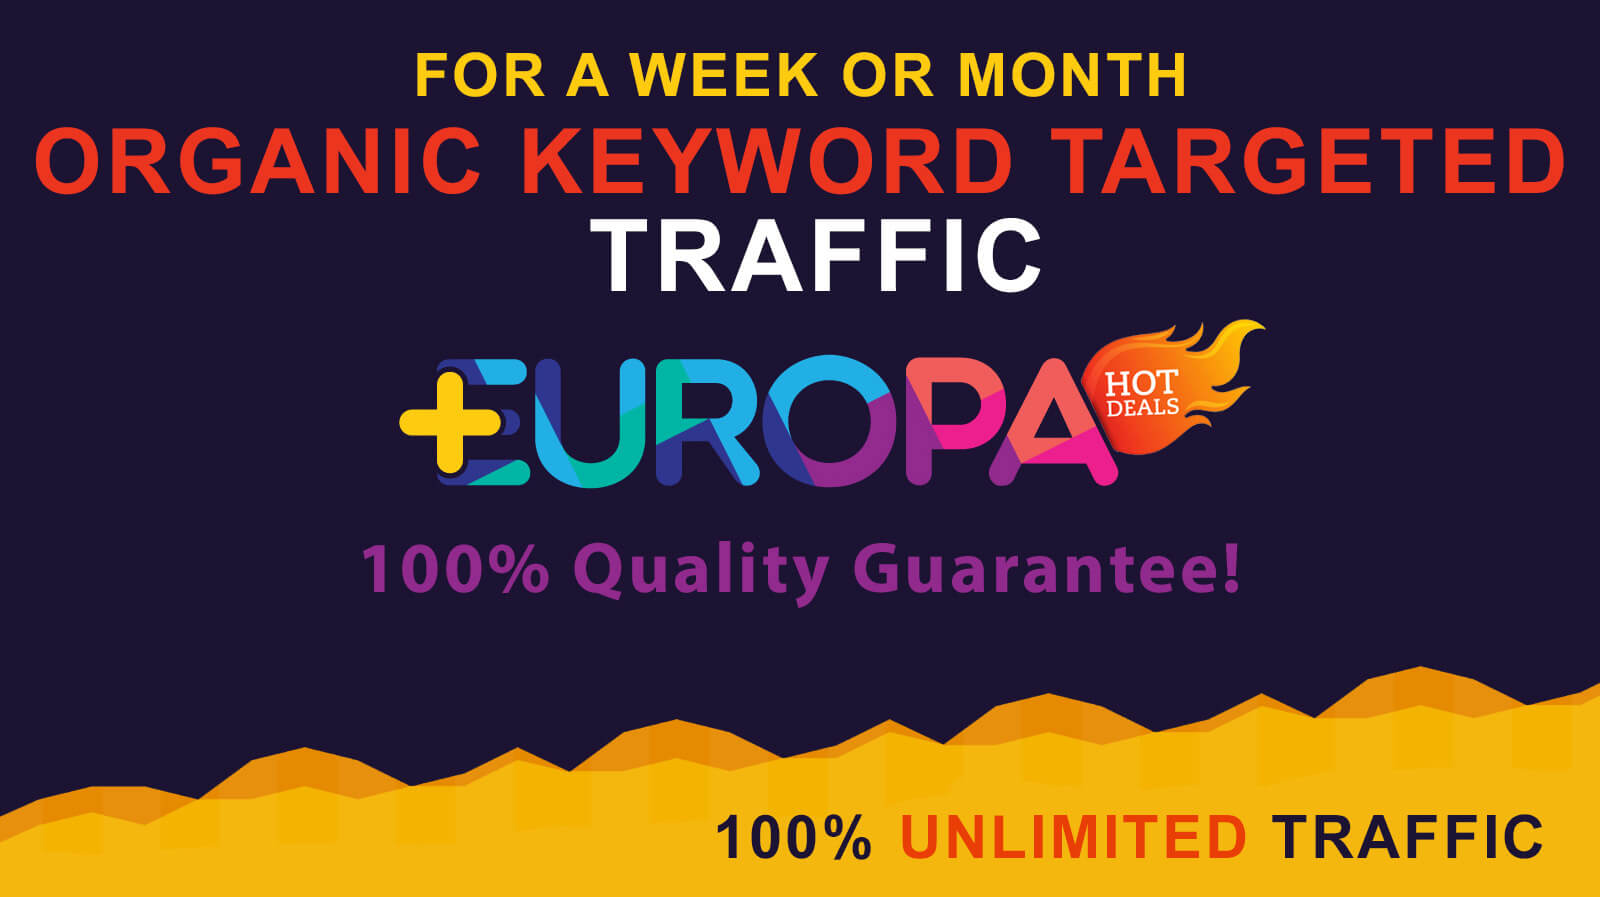 UNLIMITED ORGANIC KEYWORD TARGETED TRAFFIC FOR A WEEK OR MONTH PLUS BONUS